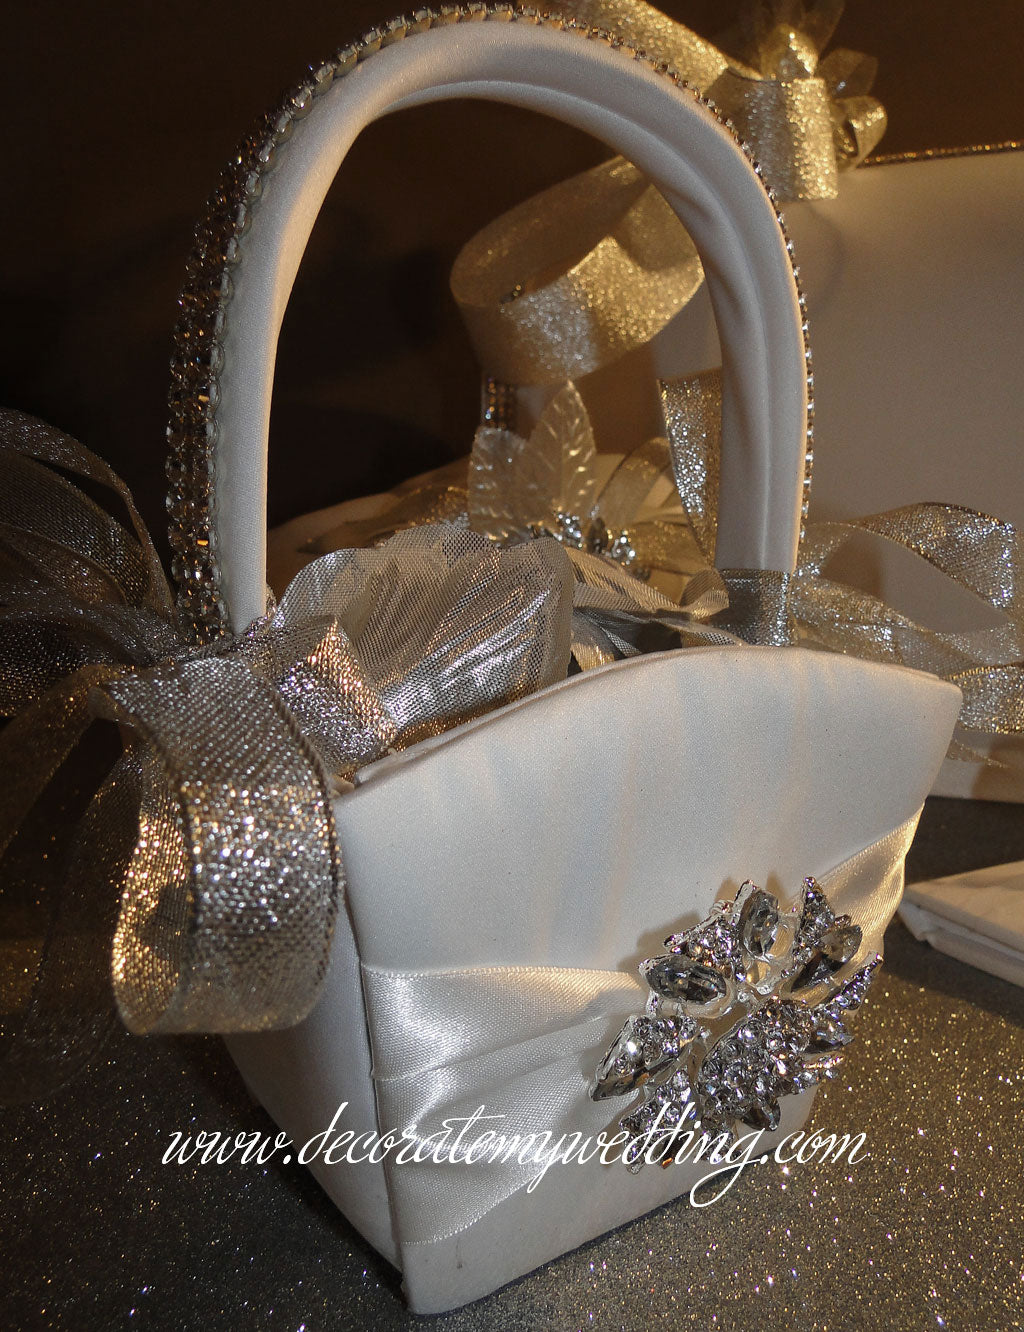 Wedding flower basket is trimmed with silver rhinestone banding, metallic ribbons, and a rhinestone brooch.